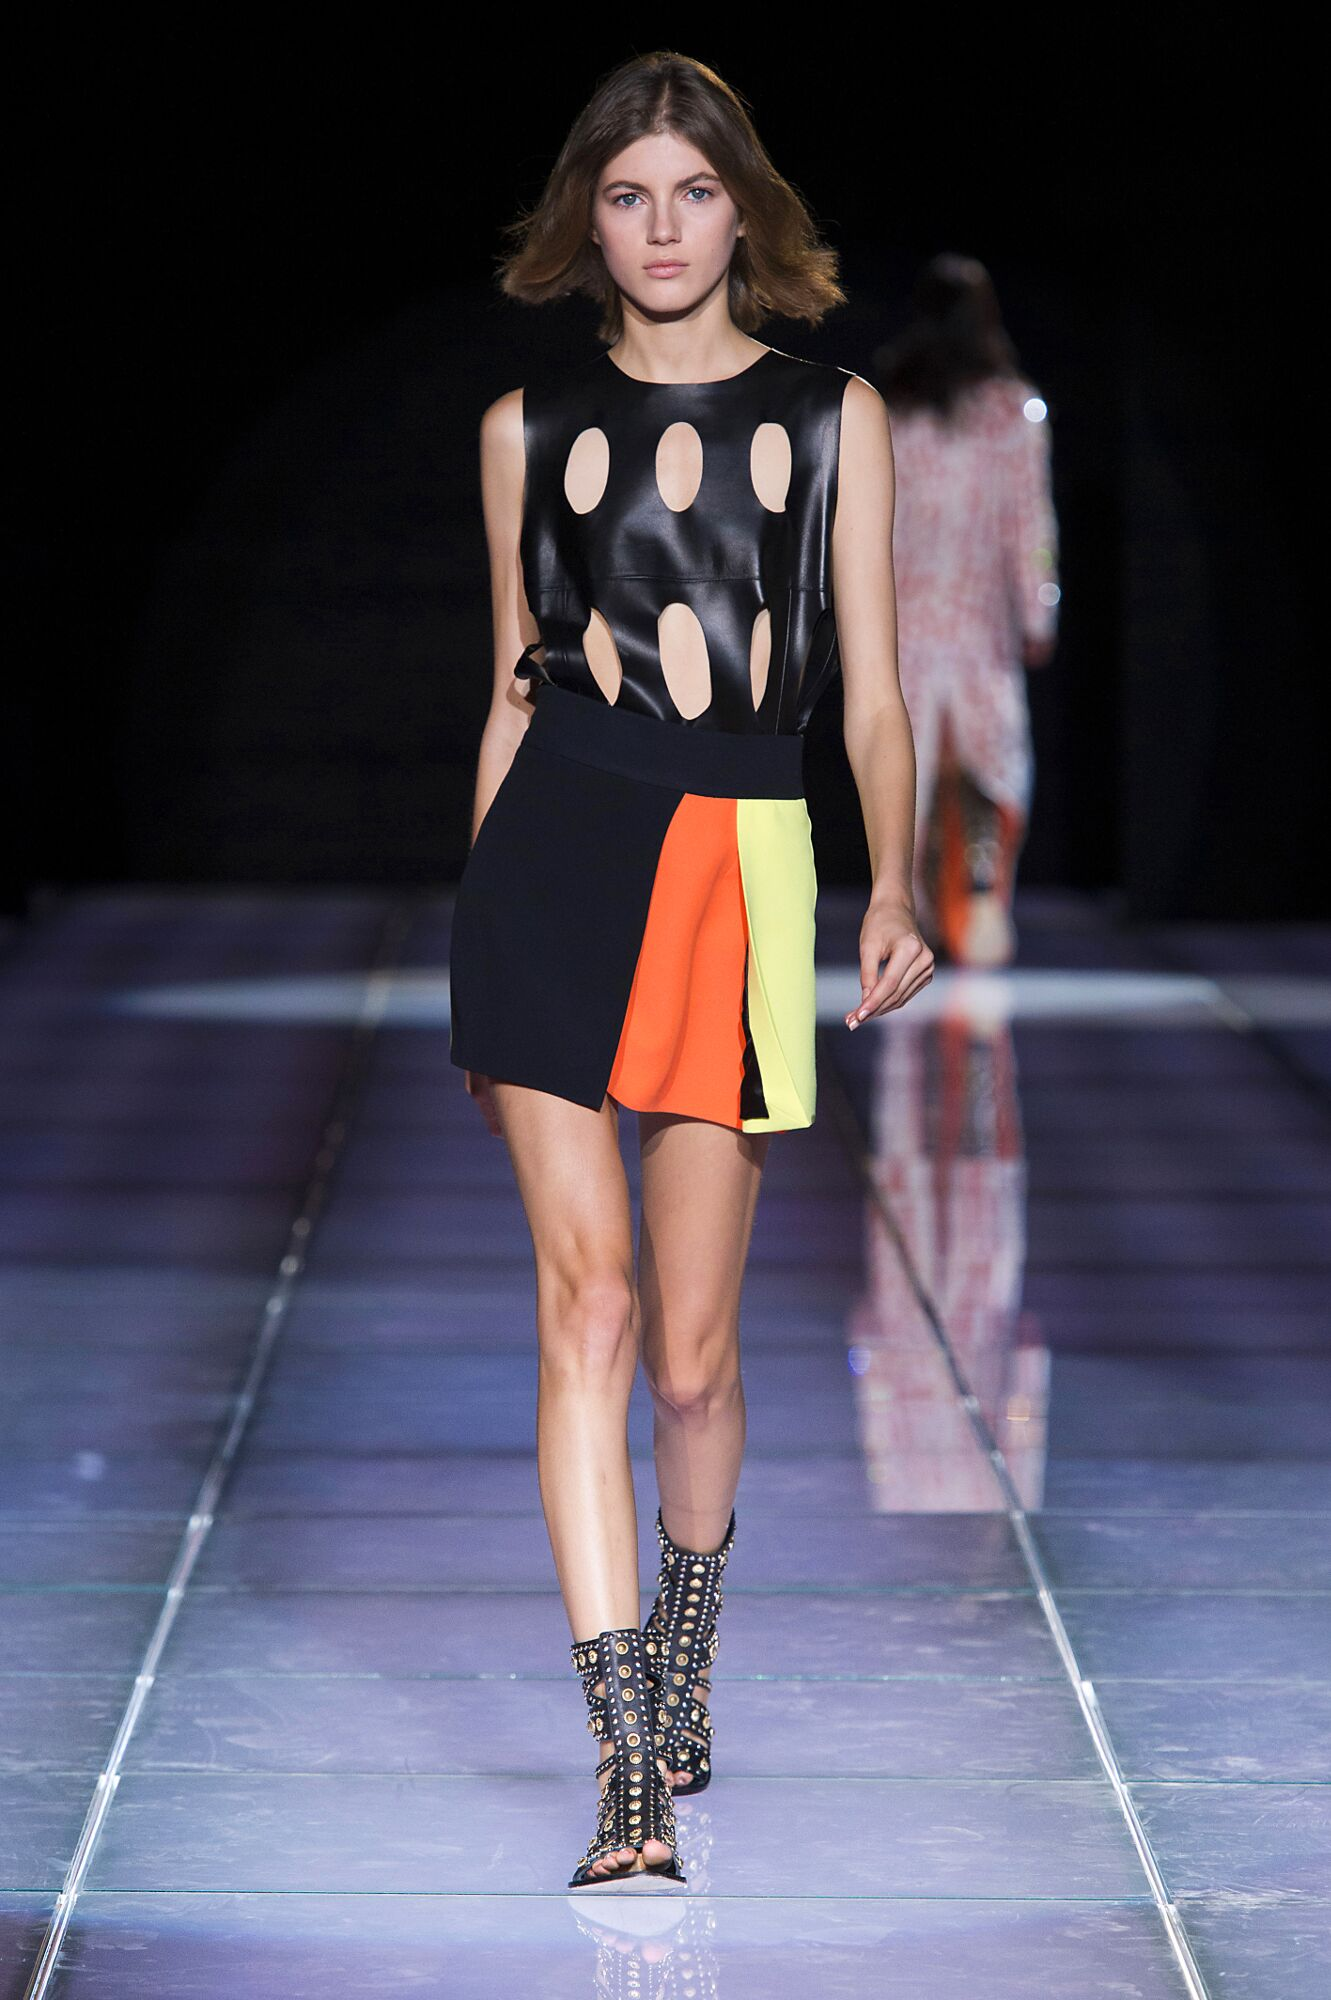 Catwalk Fausto Puglisi Woman Fashion Show Summer 2015